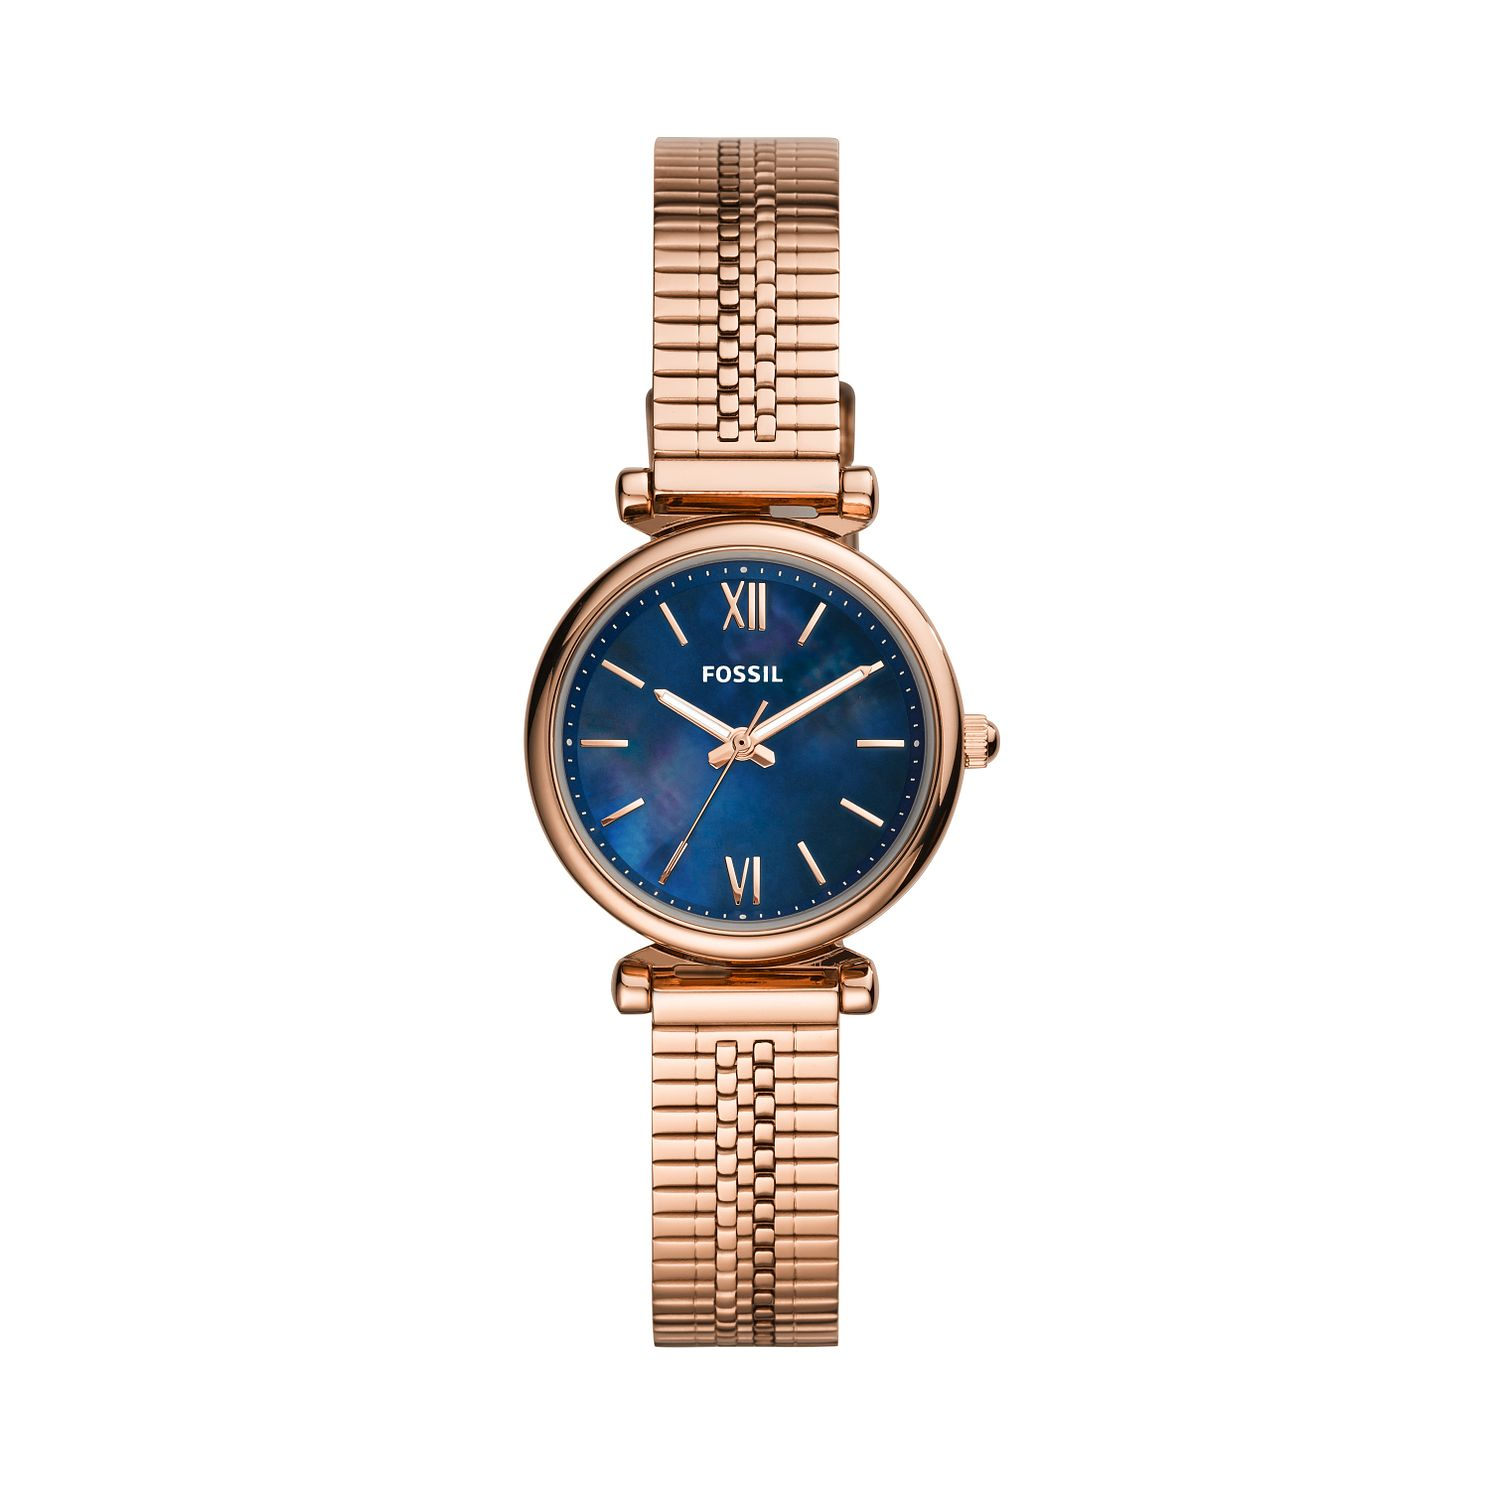 Fossil Ladies' Rose Gold Tone Stainless Steel Bracelet Watch - Product number 4011163